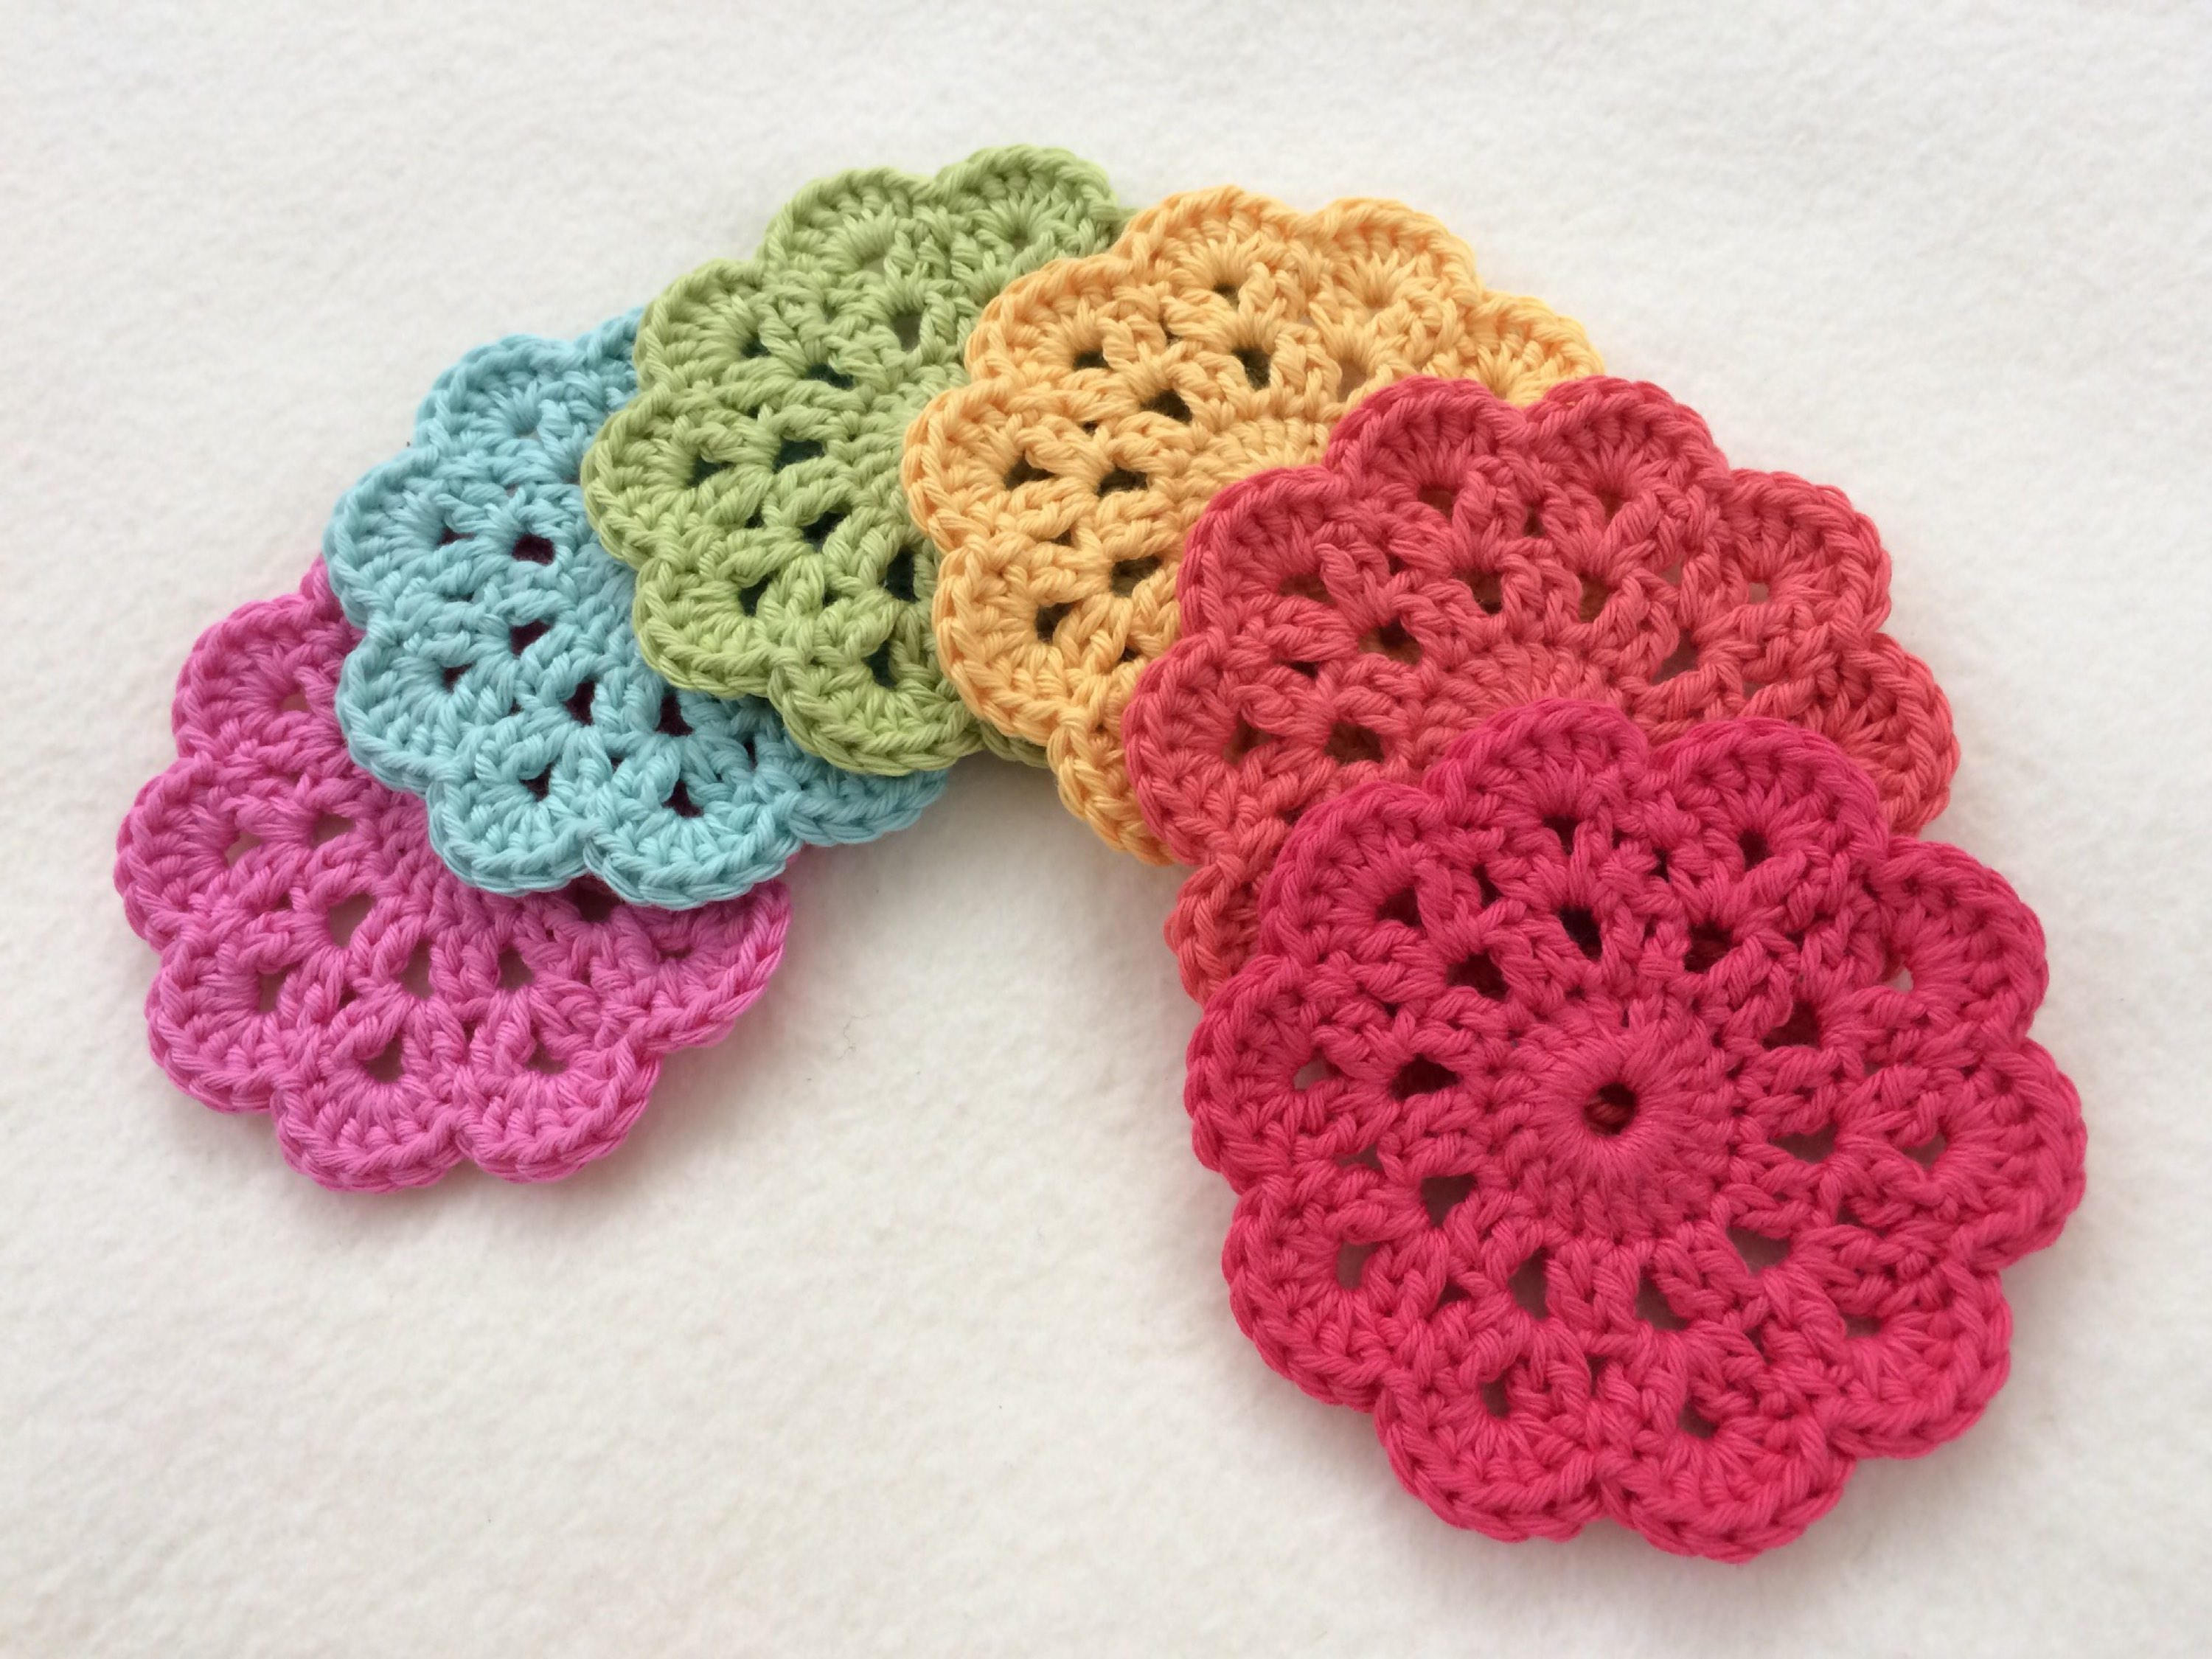 Crochet Flower Coasters Shabby Chic Cotton Coasters